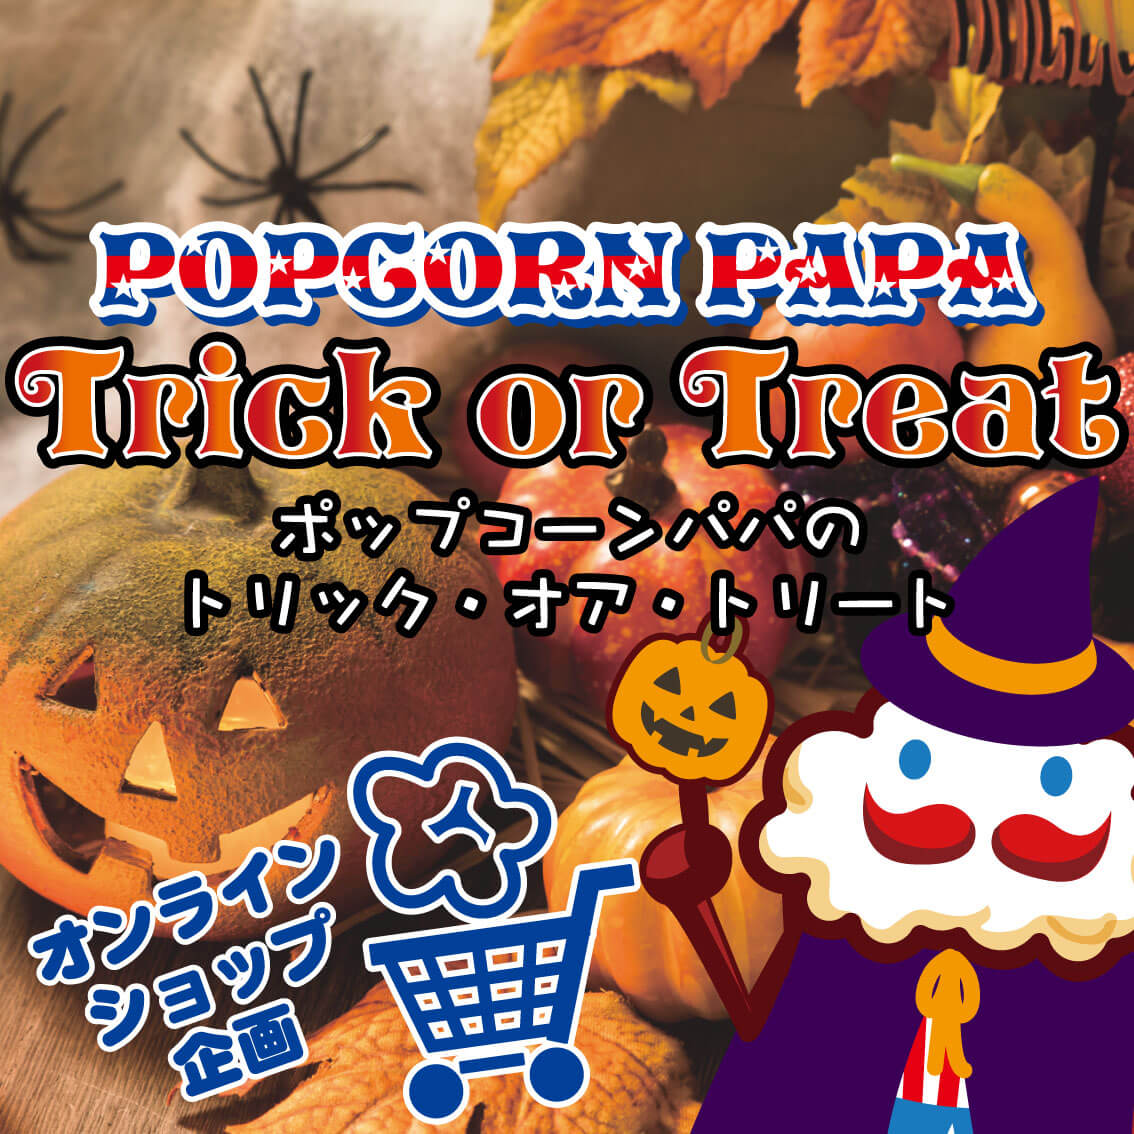 POPCORN PAPA Trick or Treat